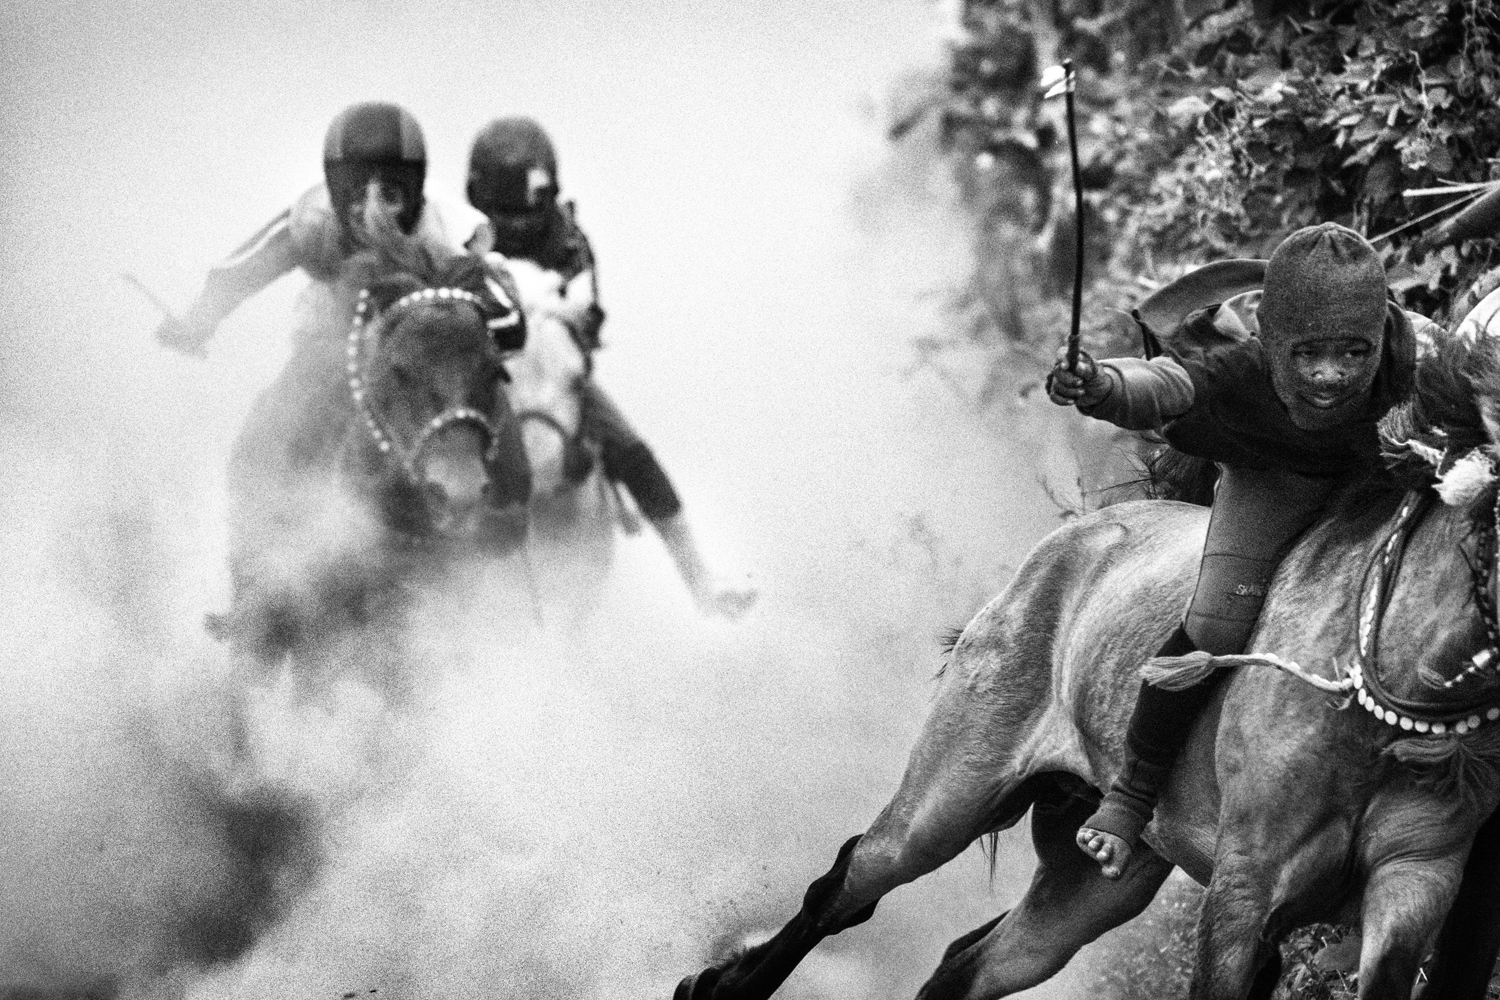 The following series of images was taken on the island of Sumbawa, West Nusa Tenggara, Indonesia.                                                              August 5, 2010. Jockeys are seen during a race.